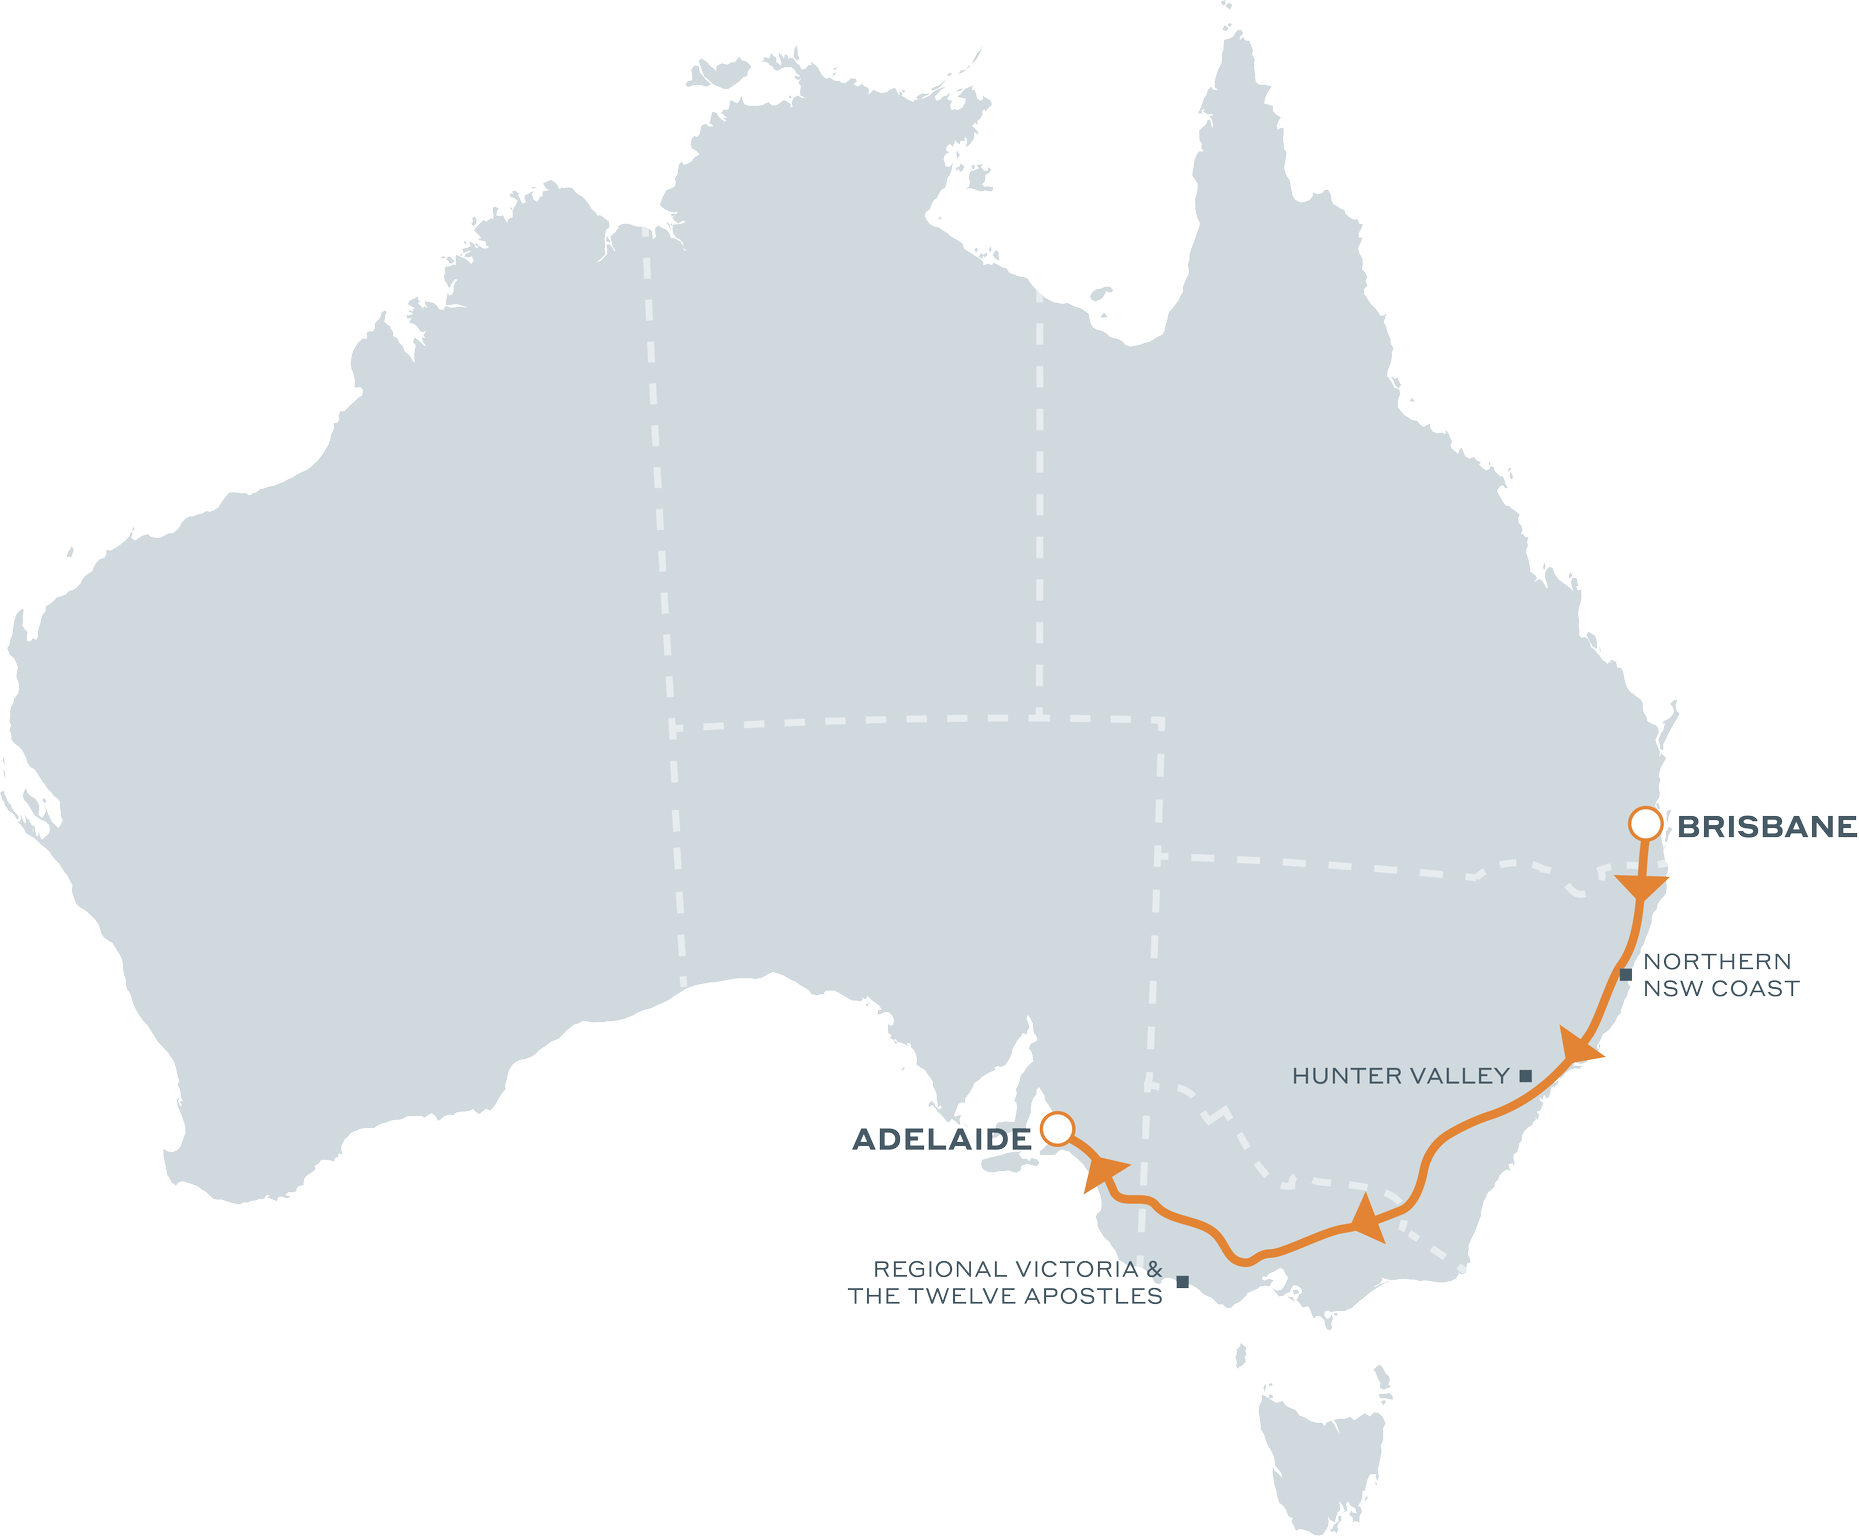 Brisbane to Adelaide